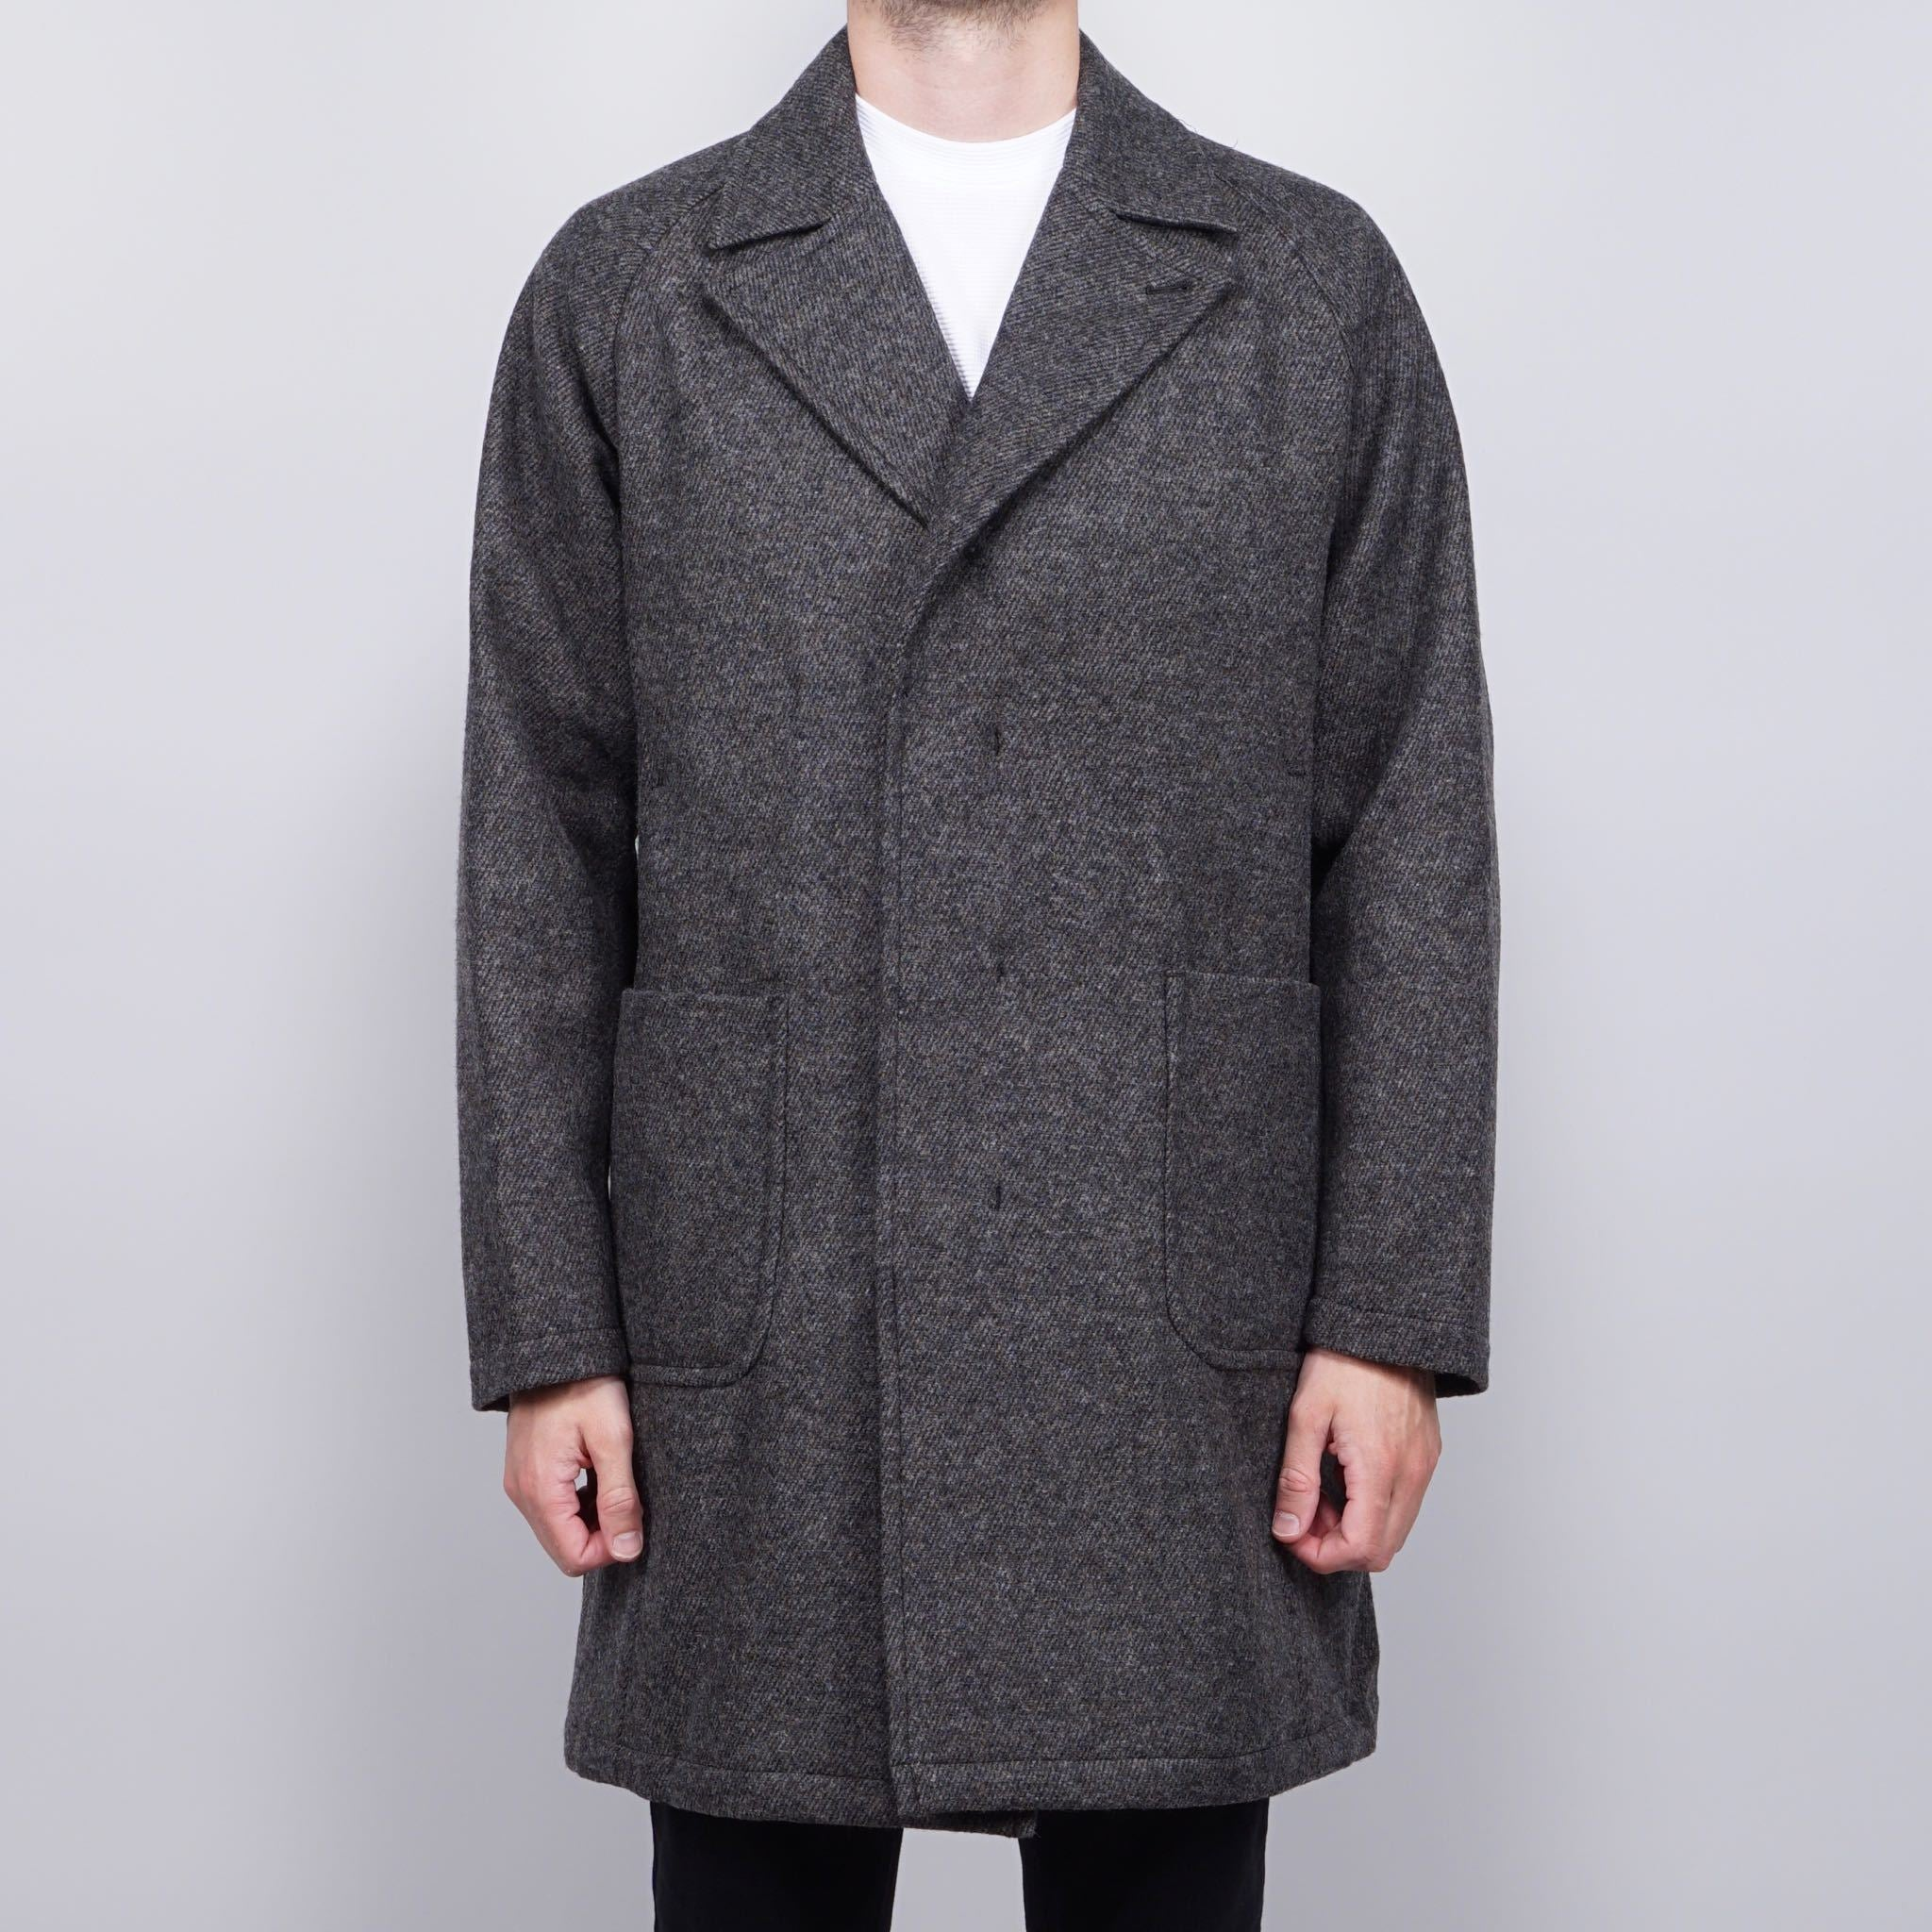 Still by Hand Tweed/Thinsulate coat